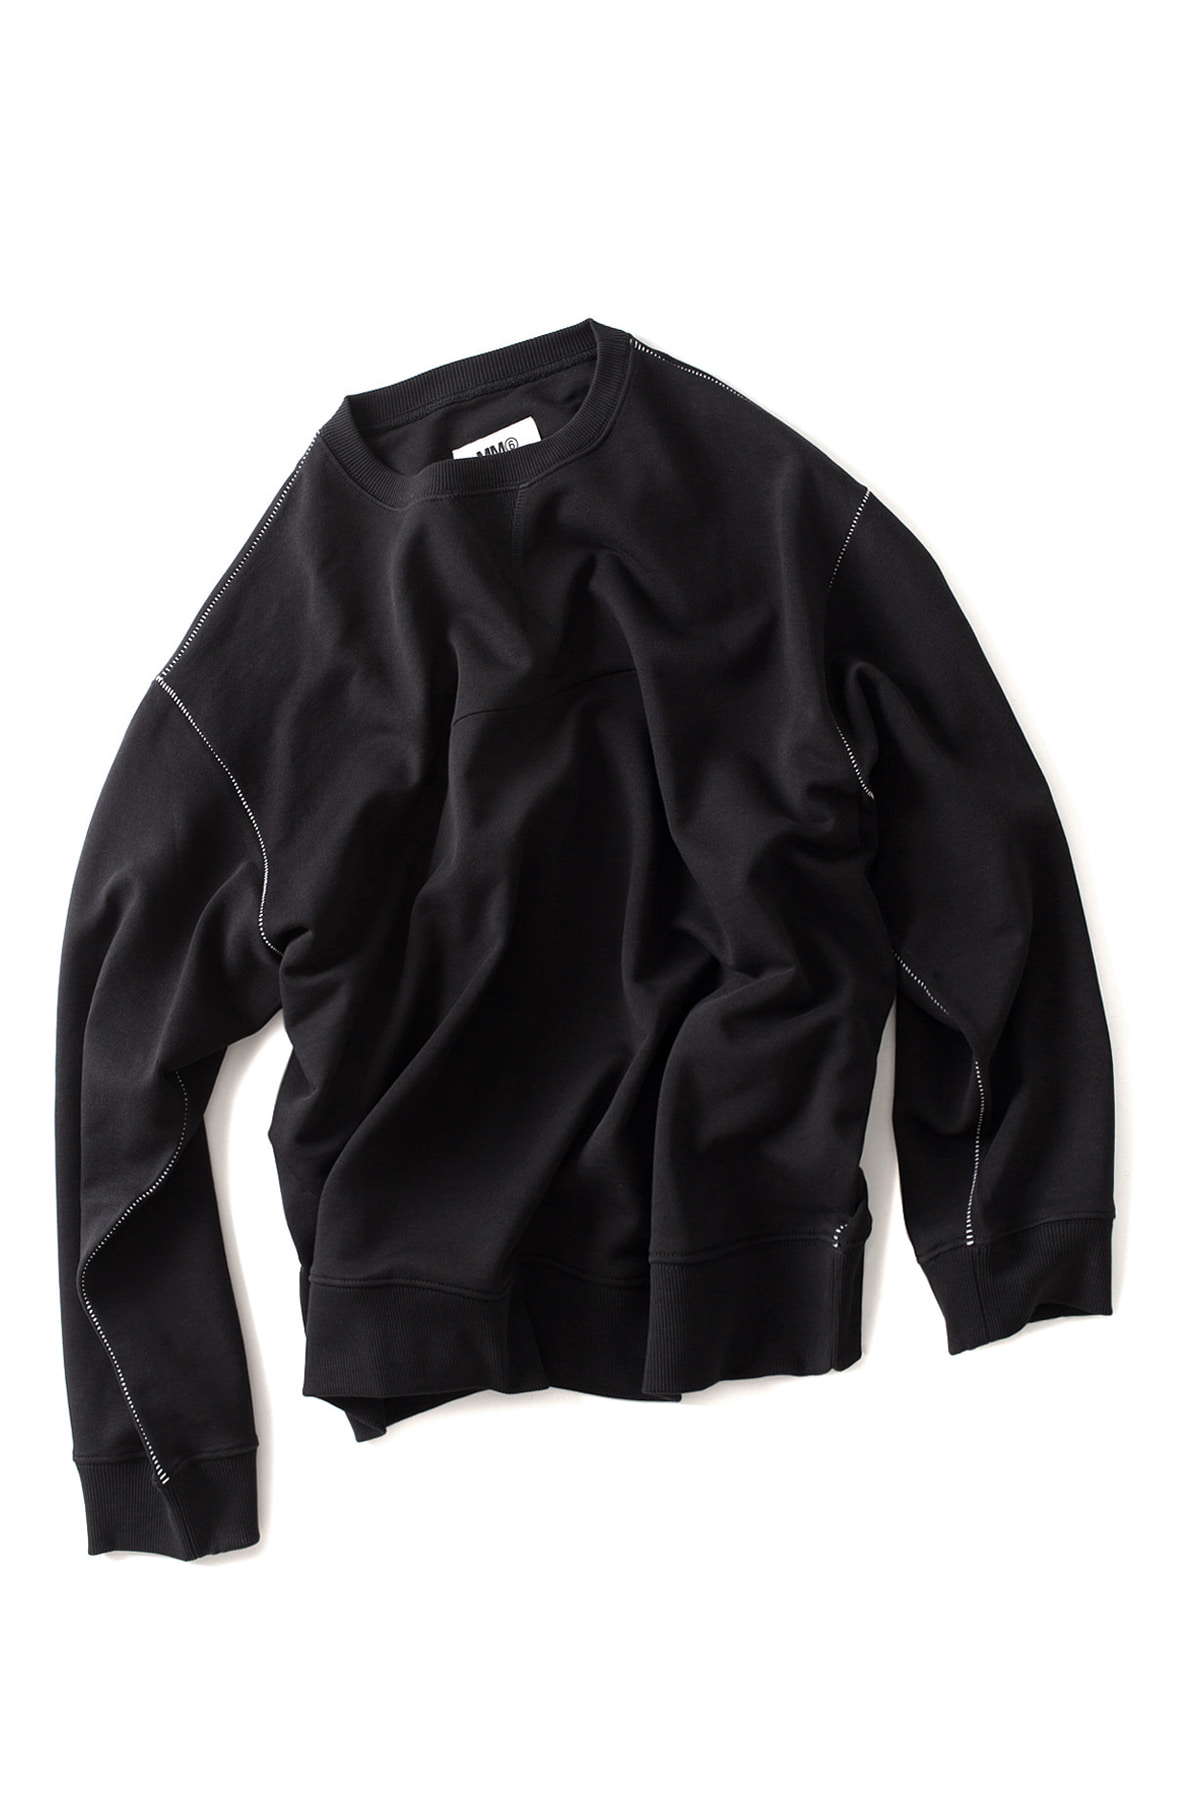 MM6 Maison Margiela : Basic Sweatshirt (Black)